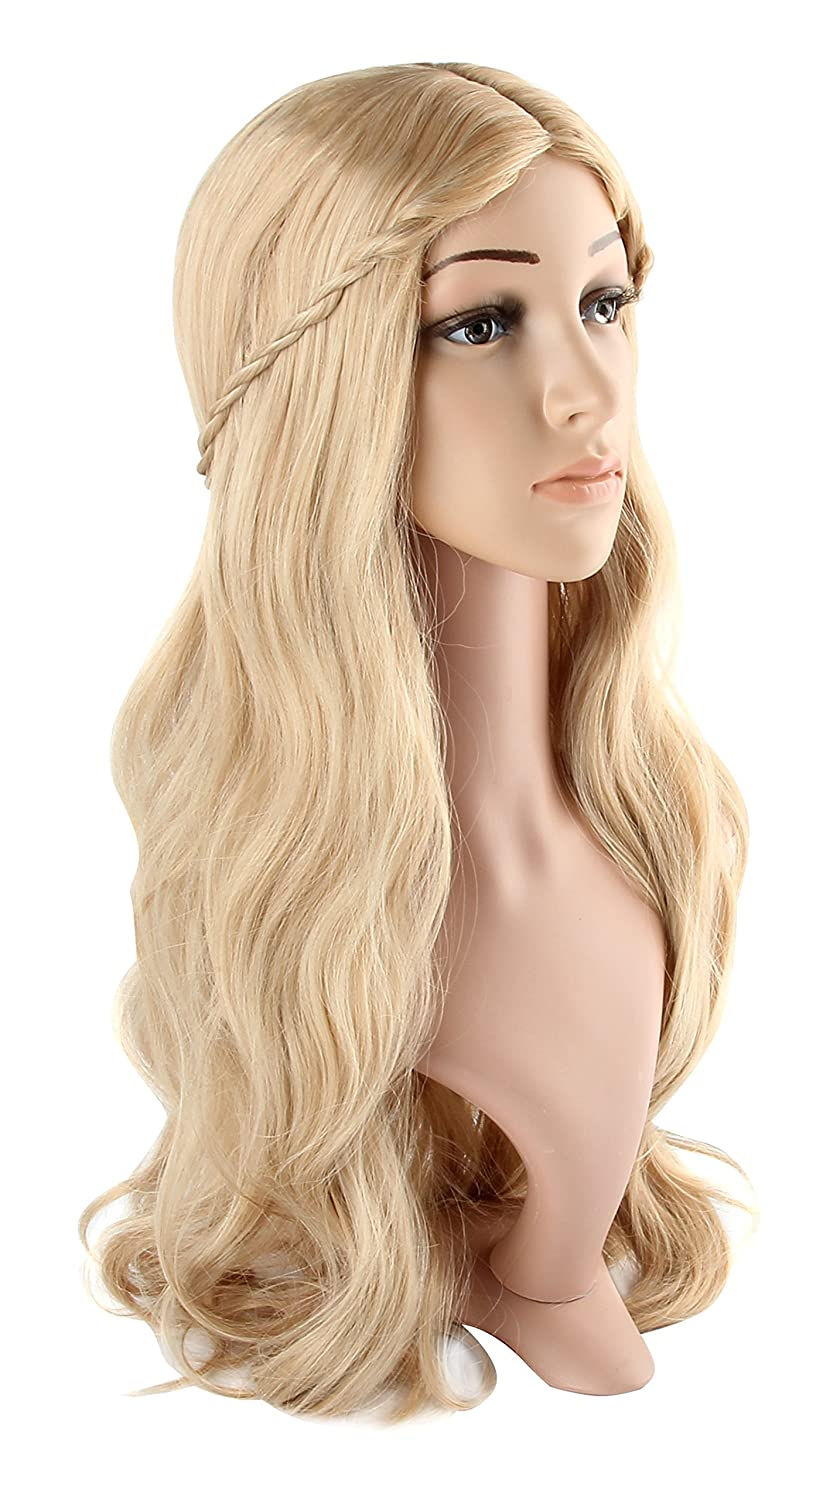 Discoball Women s Long Curly Fancy Dress Wigs Blonde Cosplay Costume Ladies  Wig Party Free Wig Cap  Amazon.co.uk  Beauty 0b97f4e264